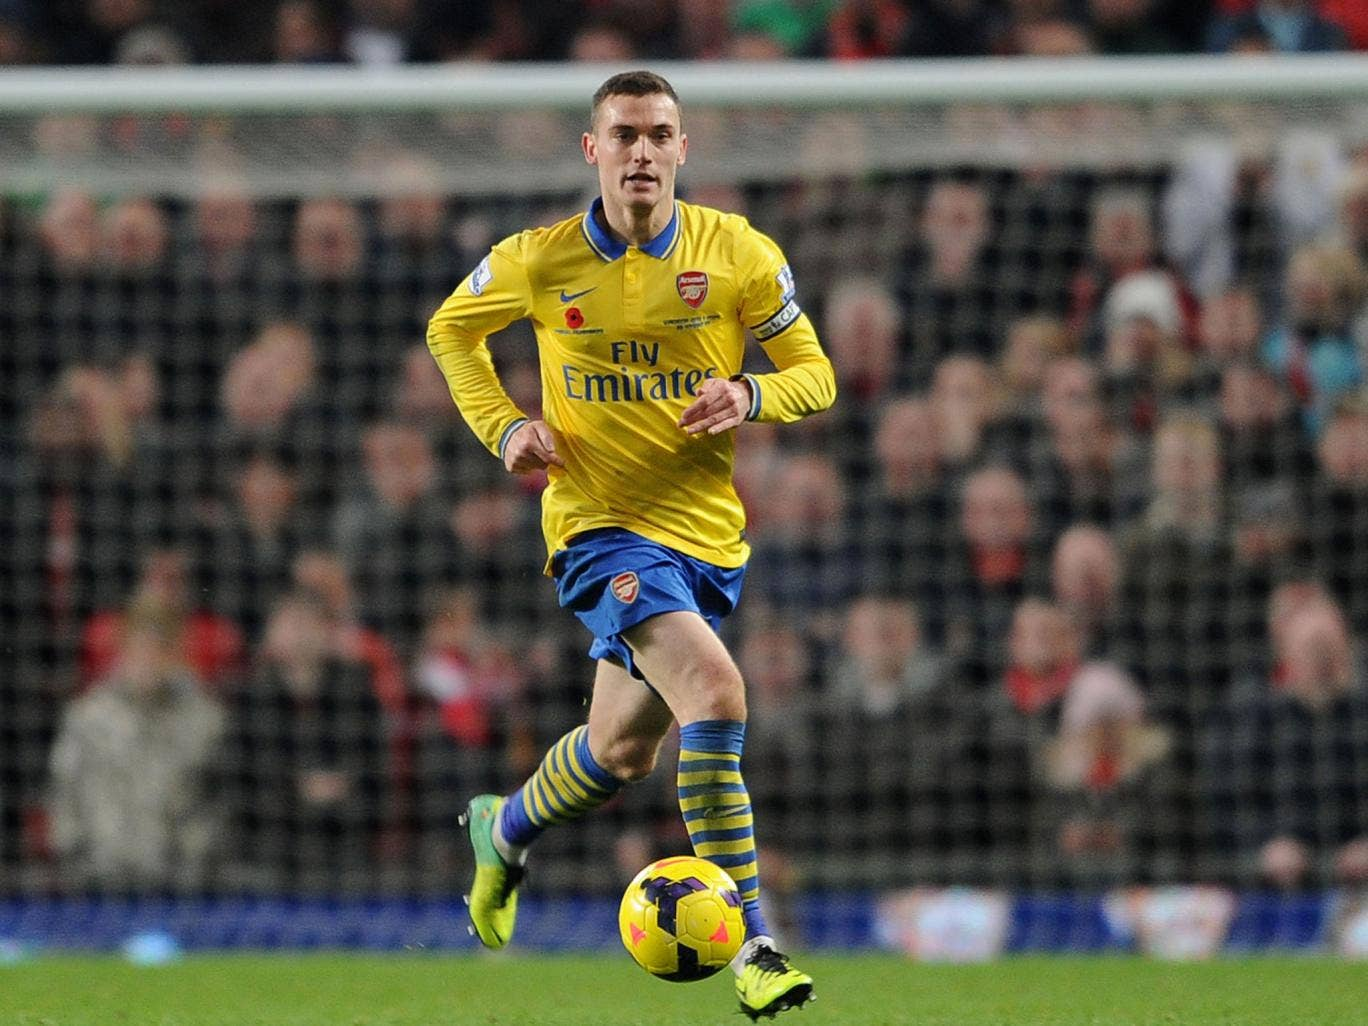 Arsenal captain Thomas Vermaelen admits Sunday's defeat to Manchester United was a missed opportunity